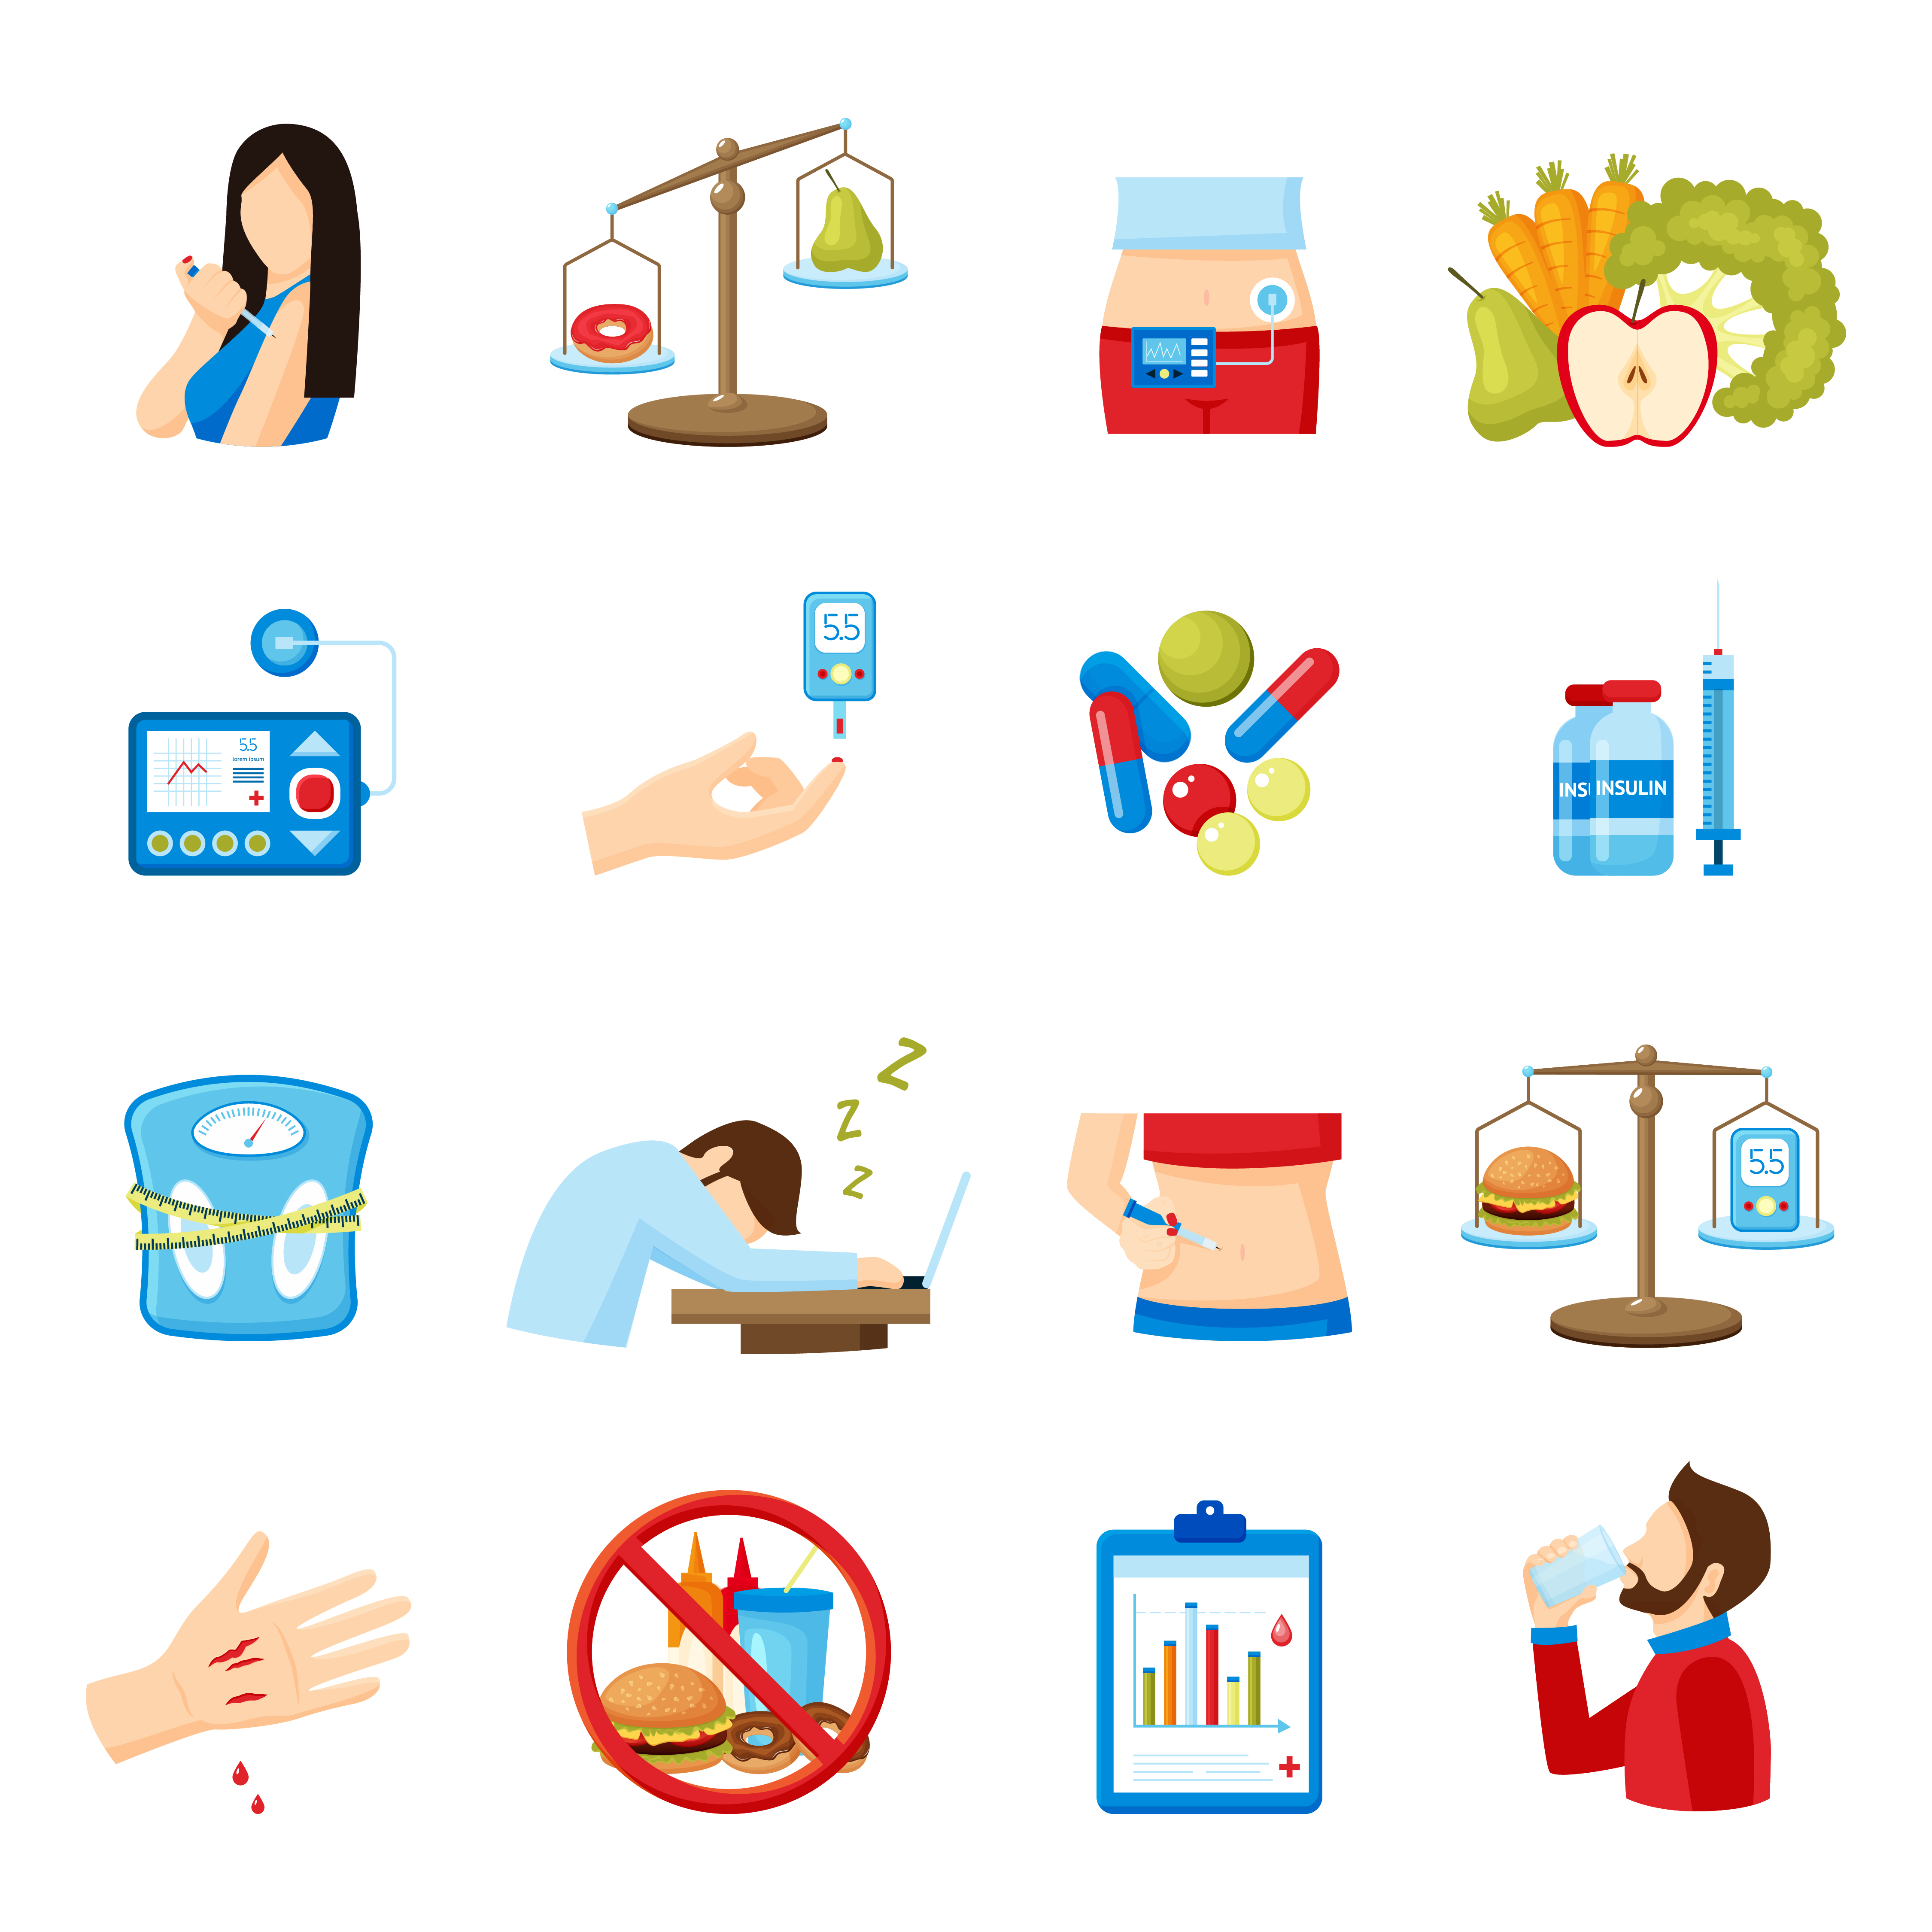 Diabetes Symptoms Signs Flat Icons Collection 478095